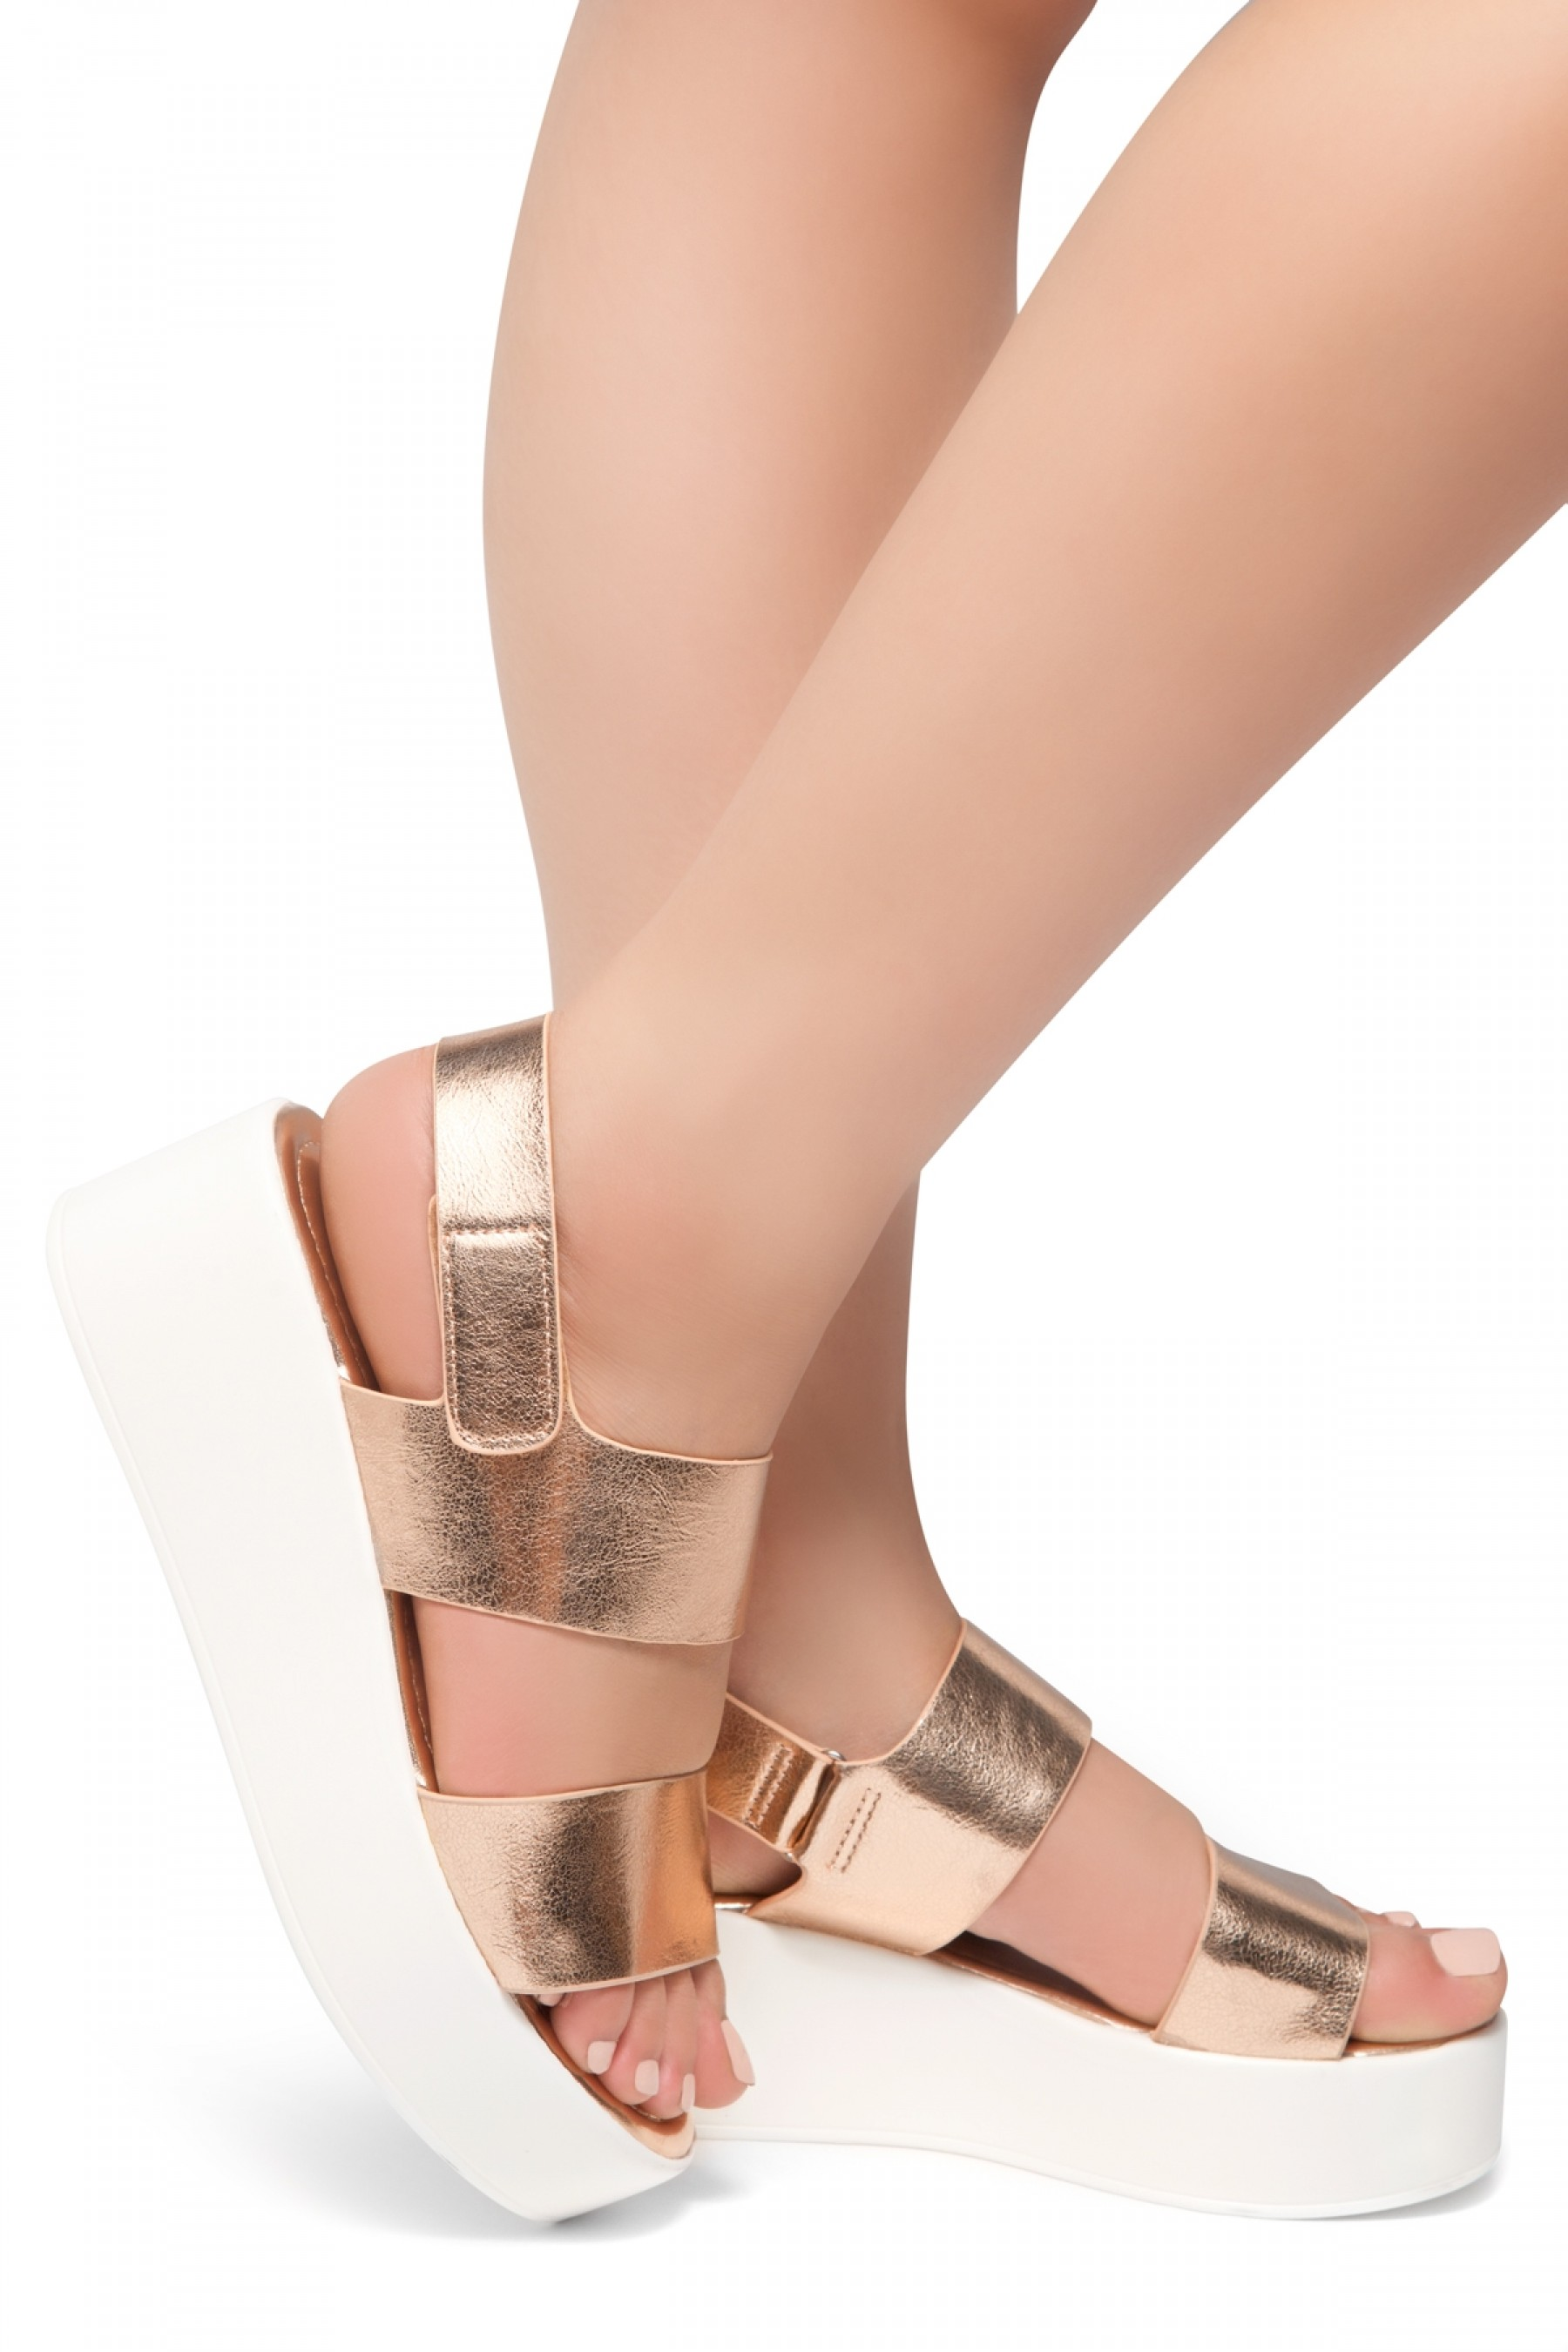 HerStyle Belma- Open Toe Velcro Strap Double-Banded Vamp with ...